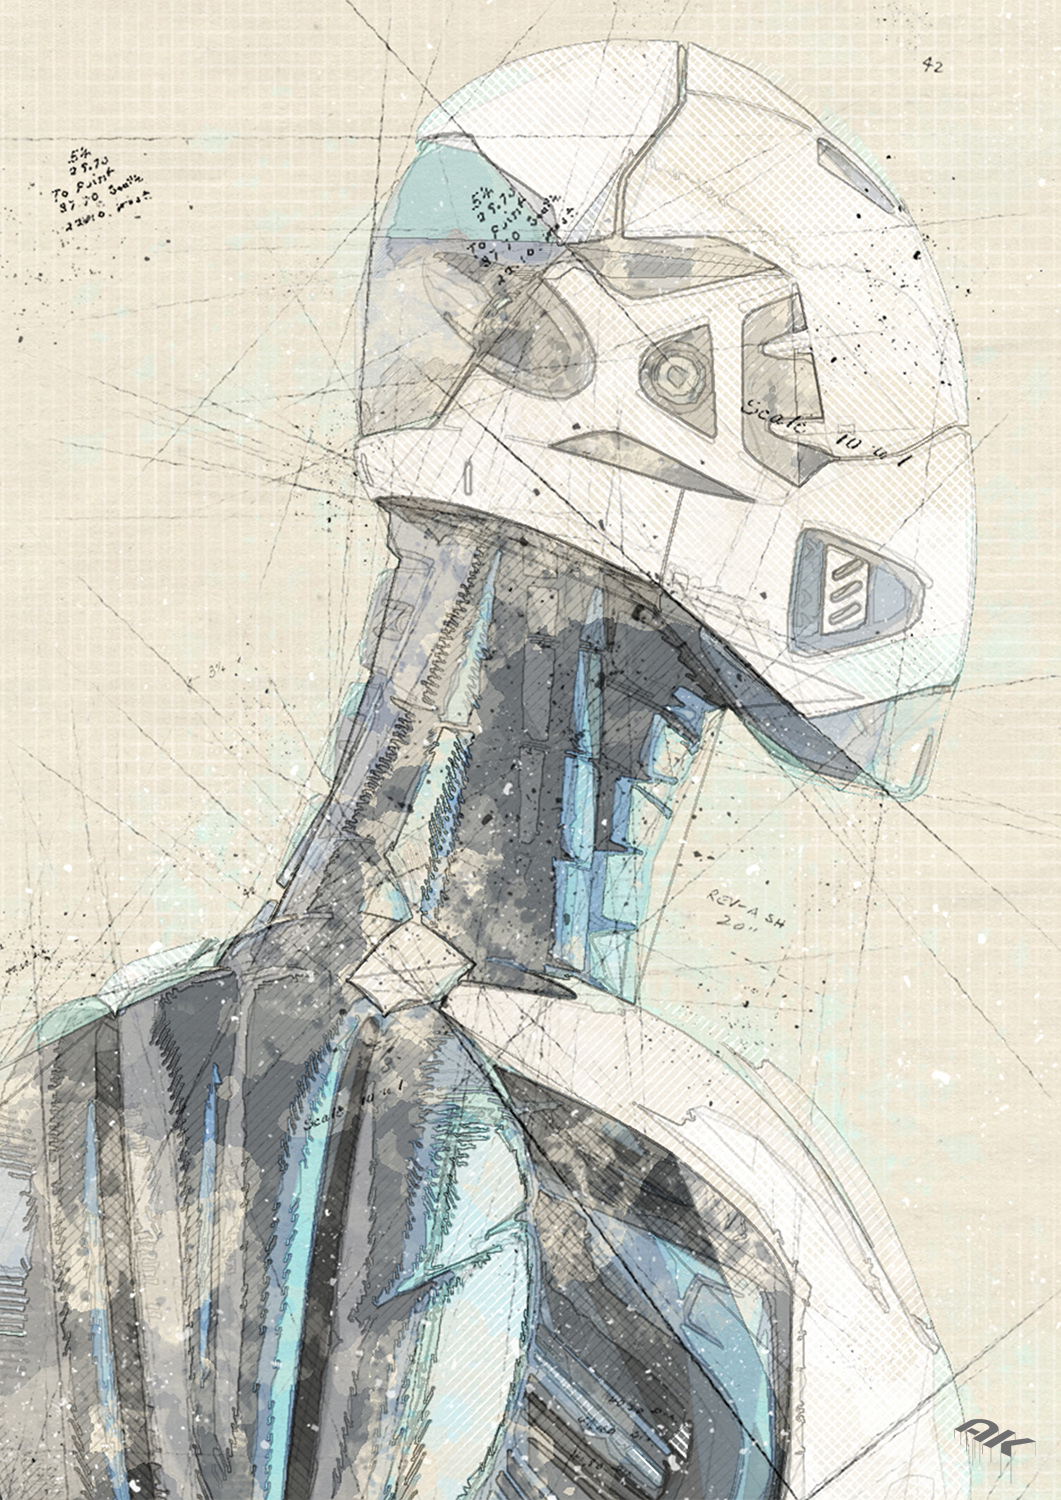 cyborg-robot-drawing-14-copyright-andrew-knutt